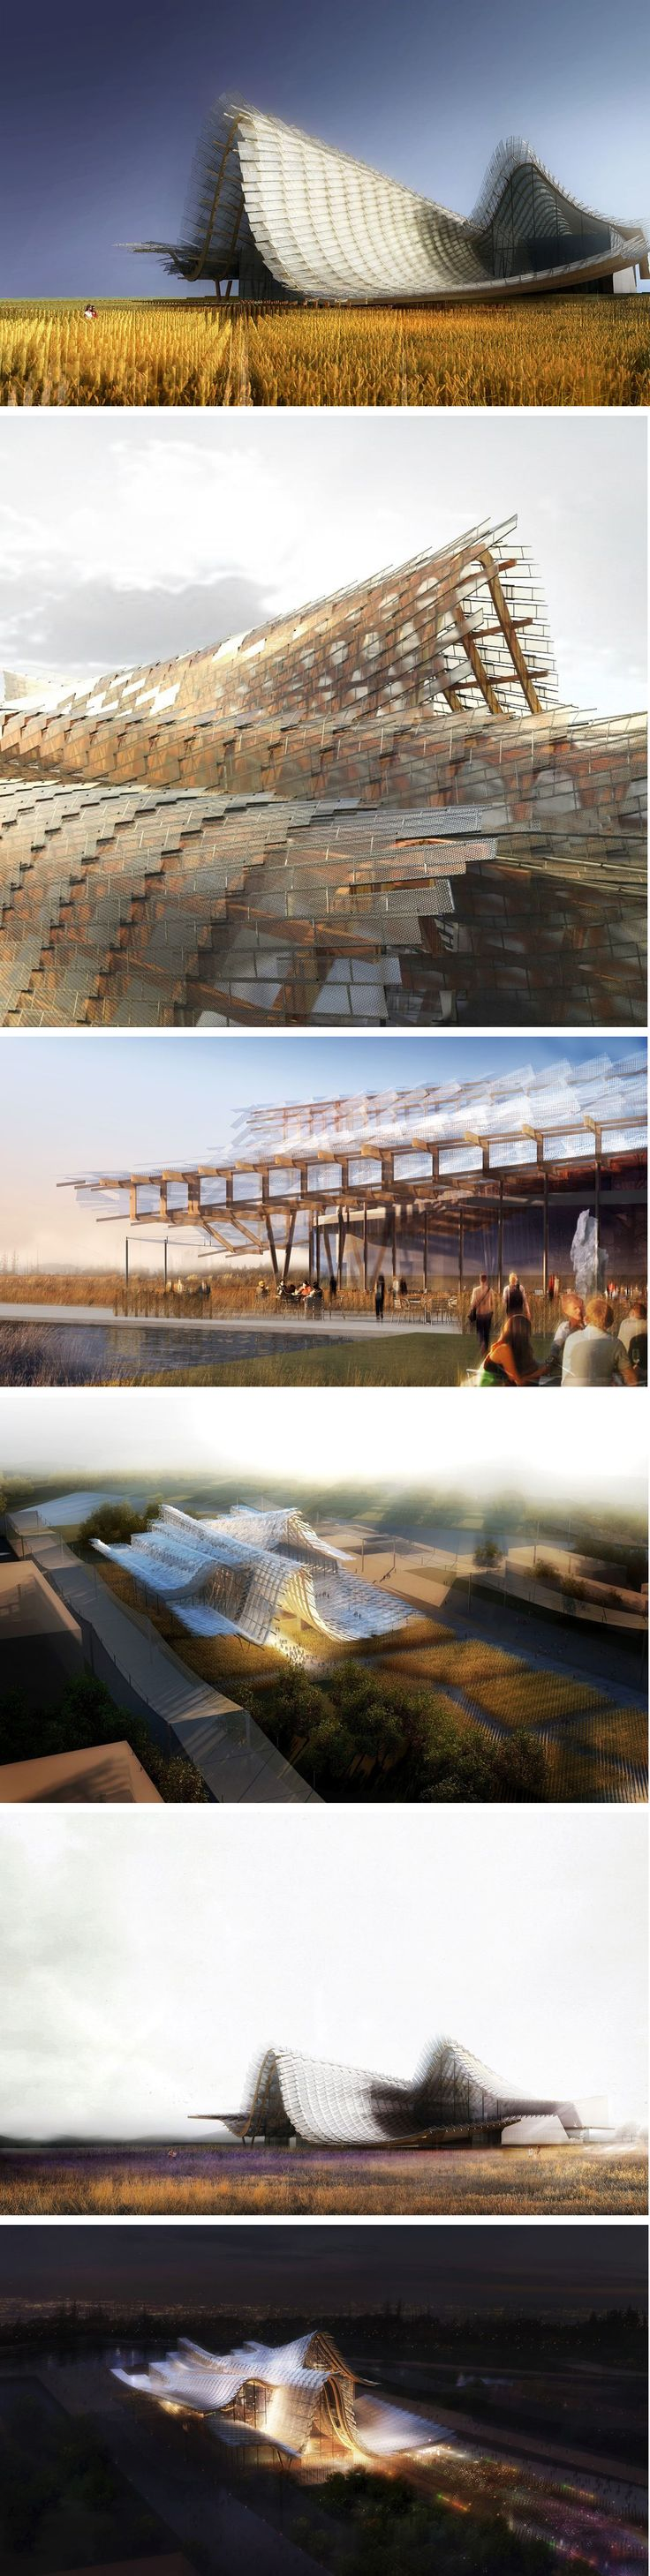 """The Land of Hope"", China Pavilion at @Expo2015Milano by Studio Link-Arc"